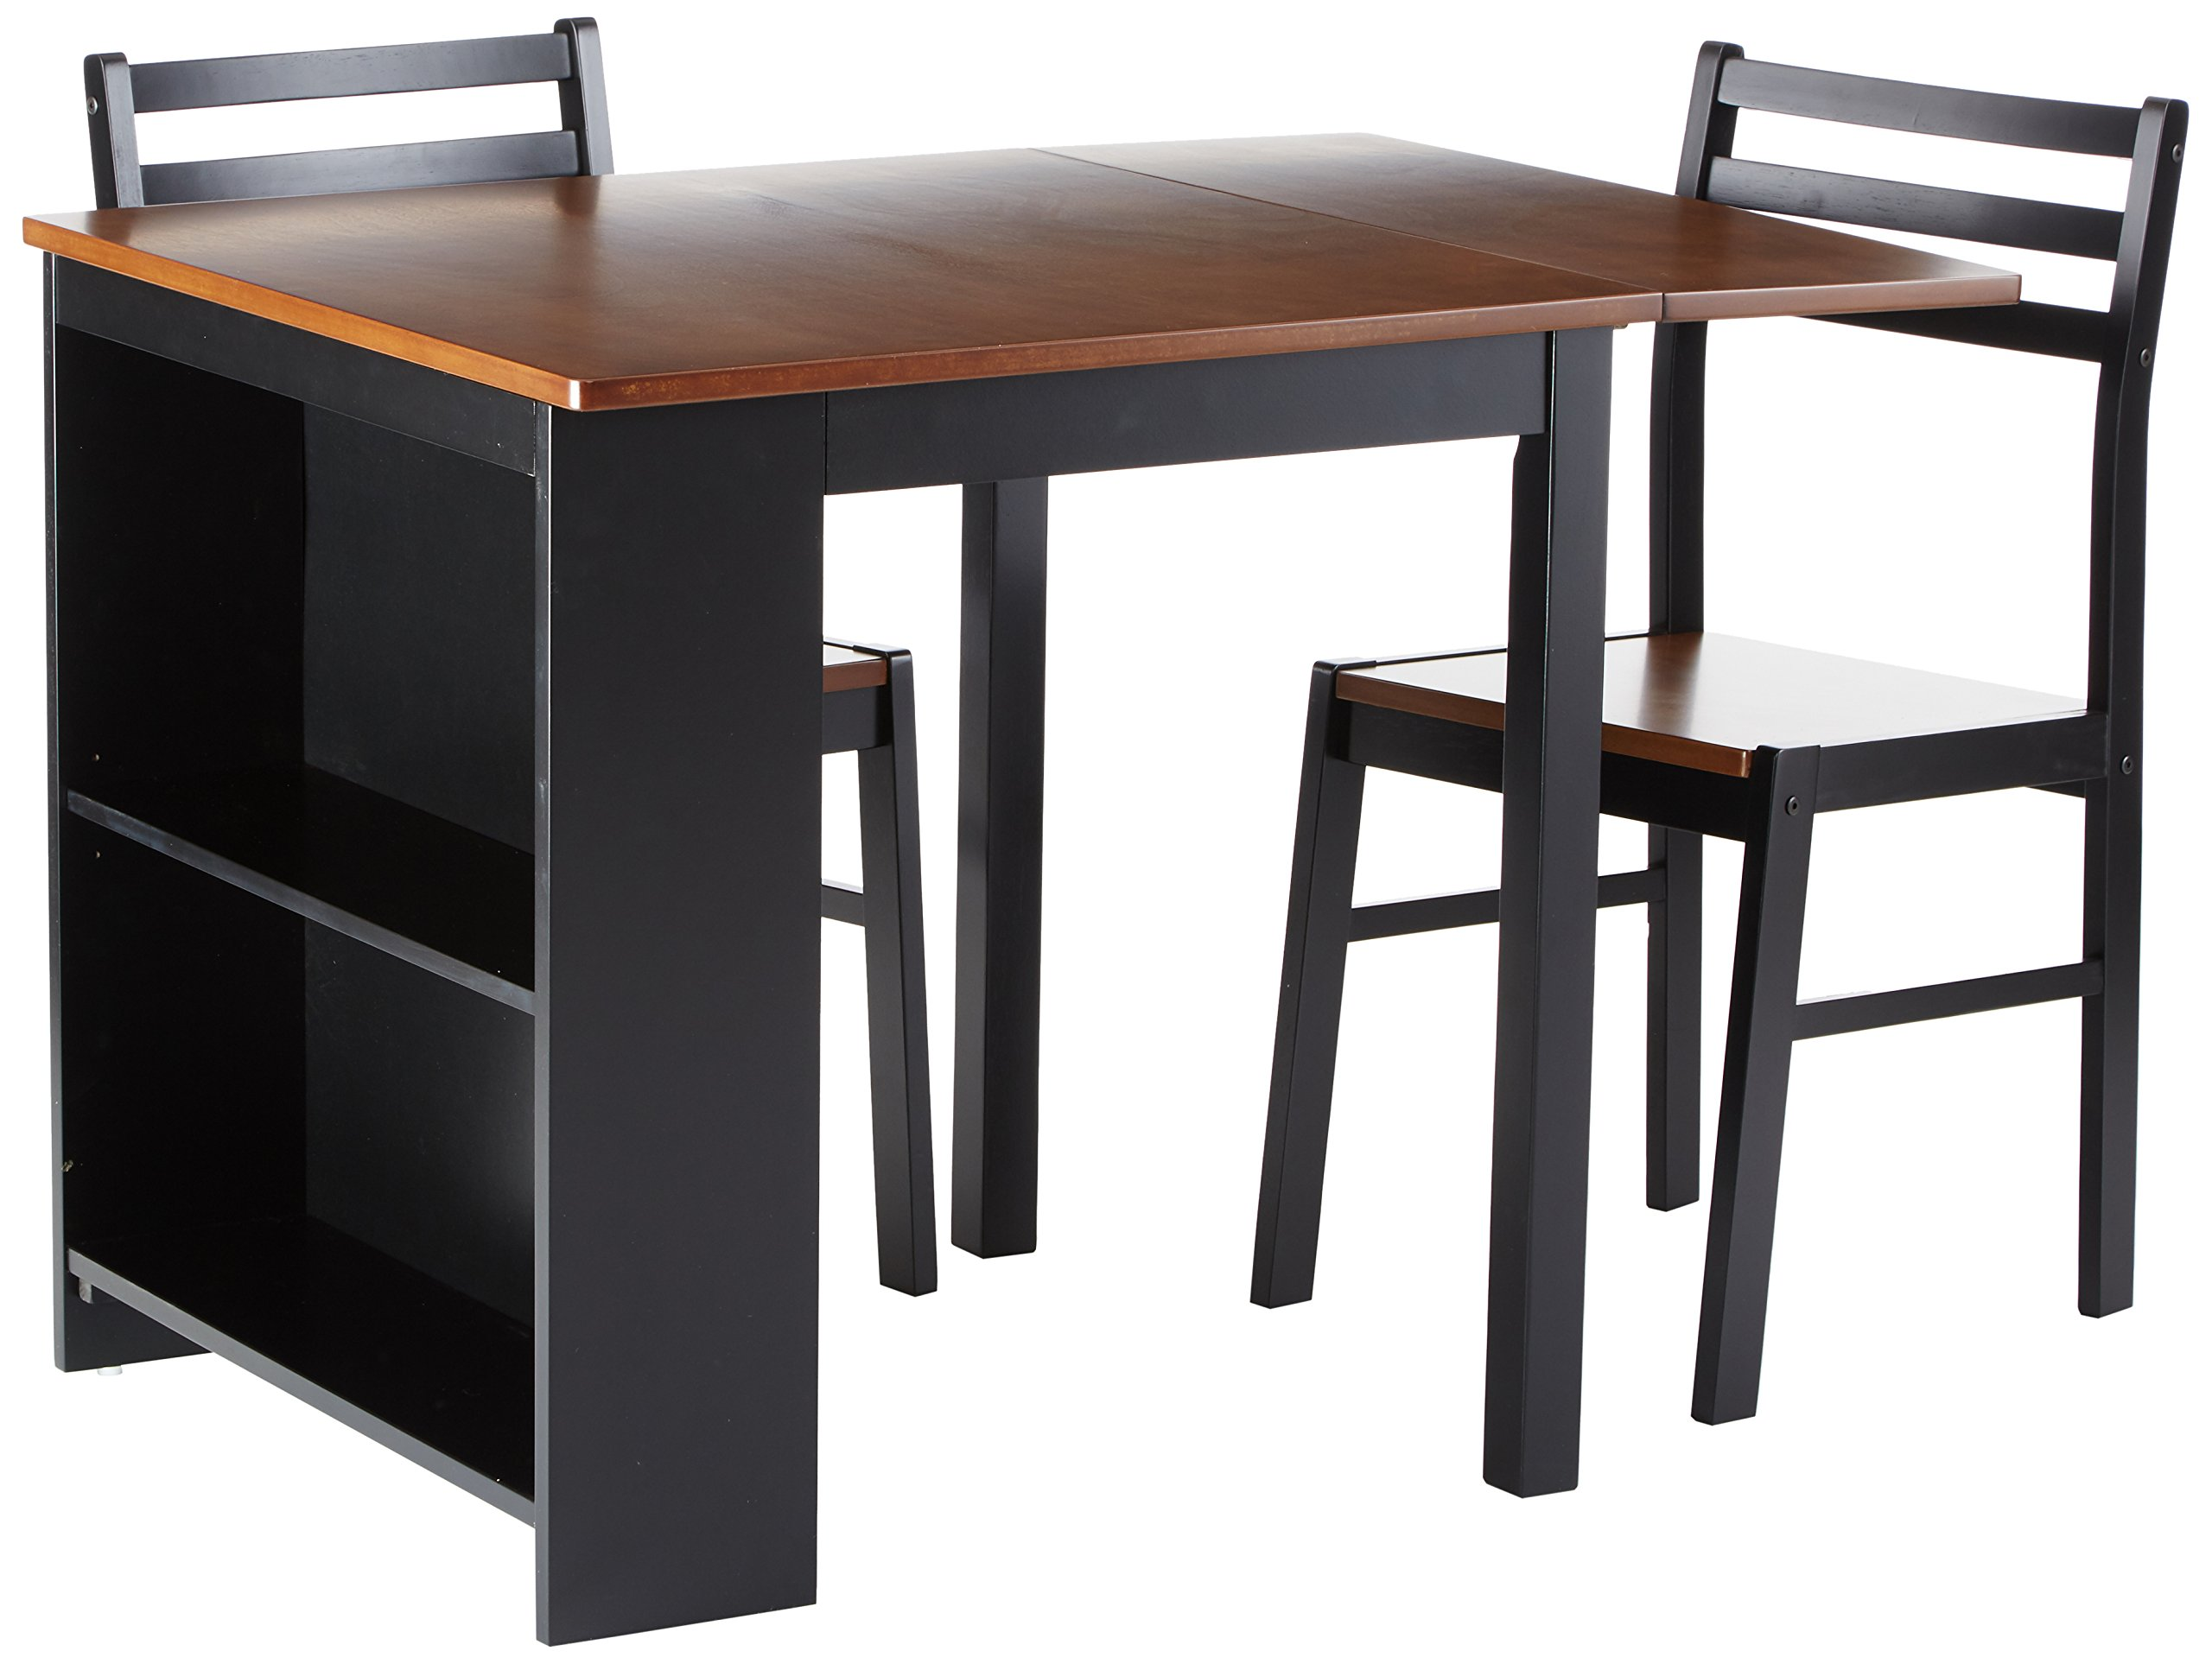 Persia 3-piece Breakfast Dining Set Brown and Black by Coaster Home Furnishings